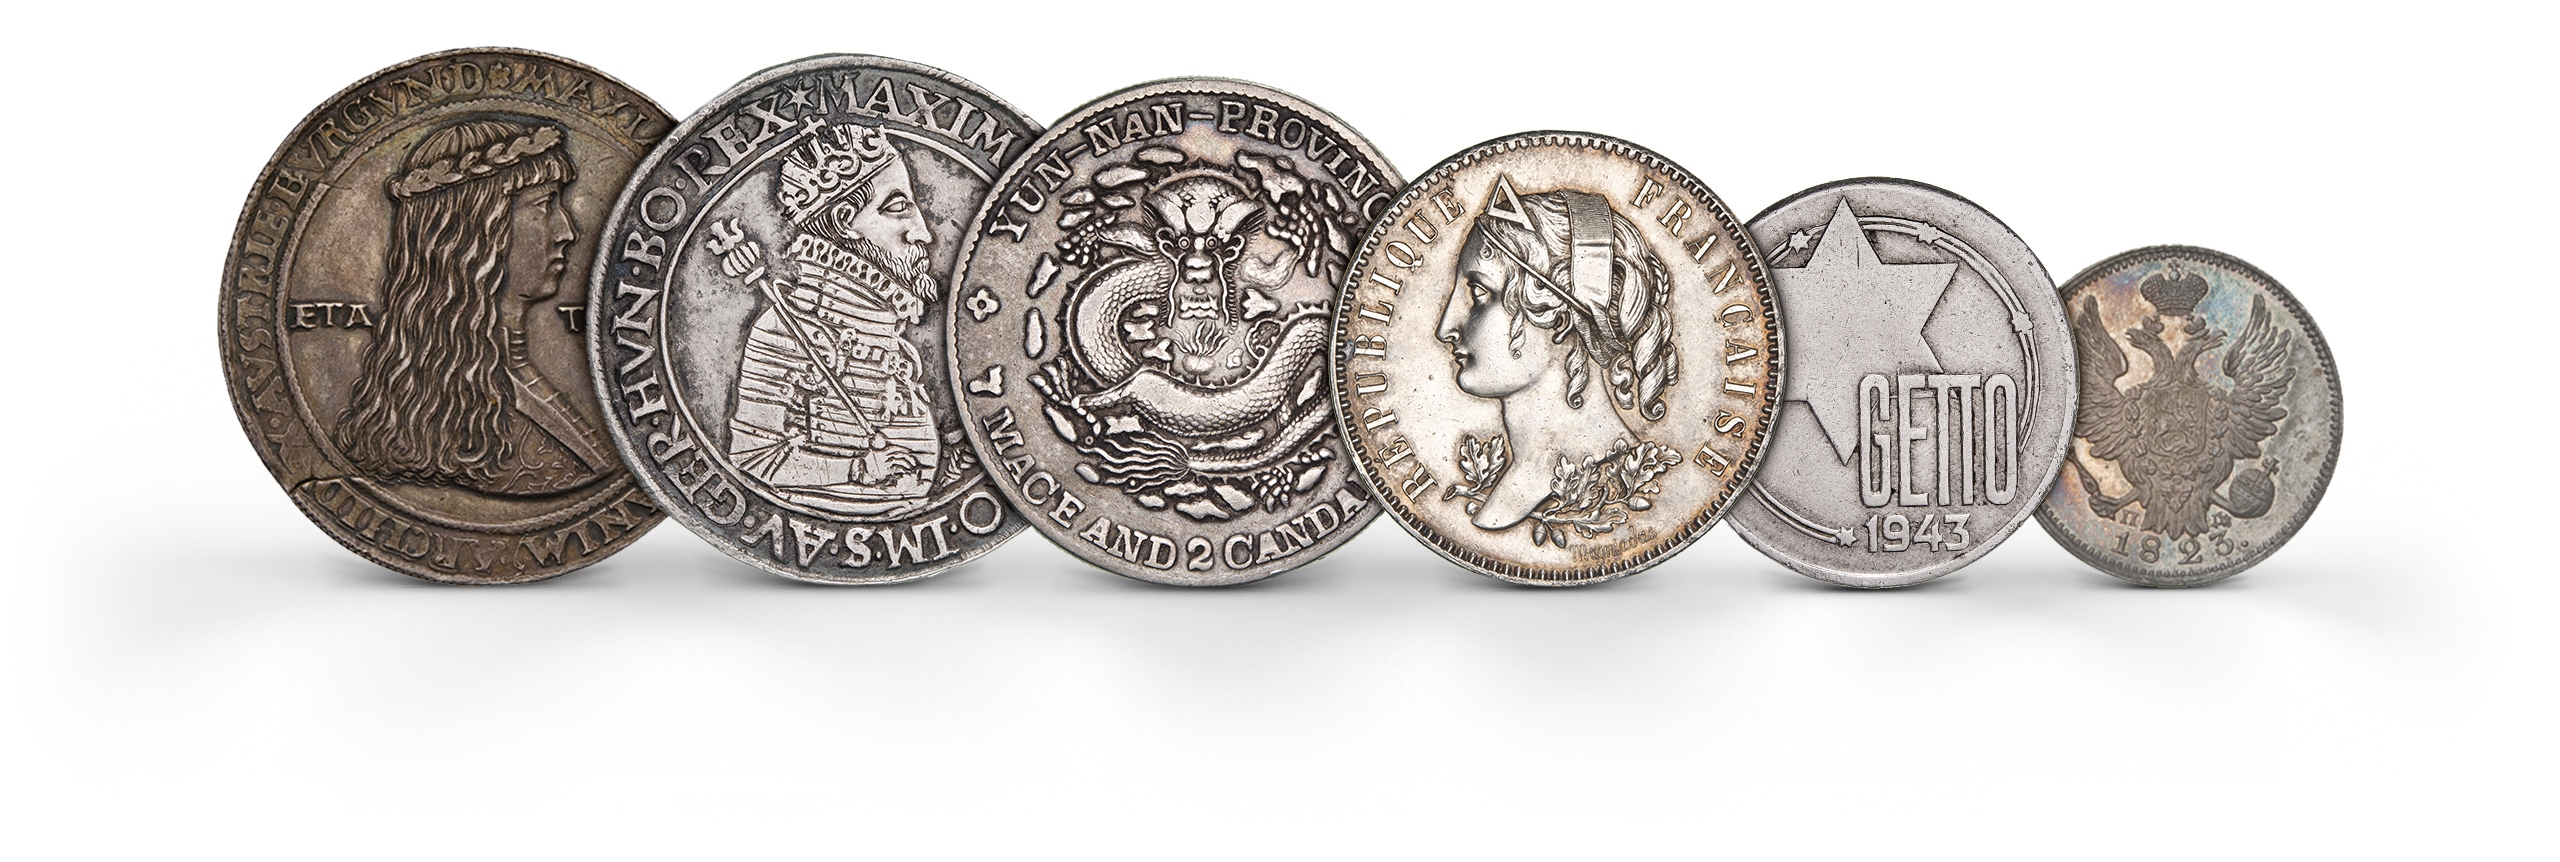 Photography of world modern Coins in silver from several periods, photographed for Morton and Eden in association with Sotheby's sold in auction in London Photography and retouch by Maria Queralt